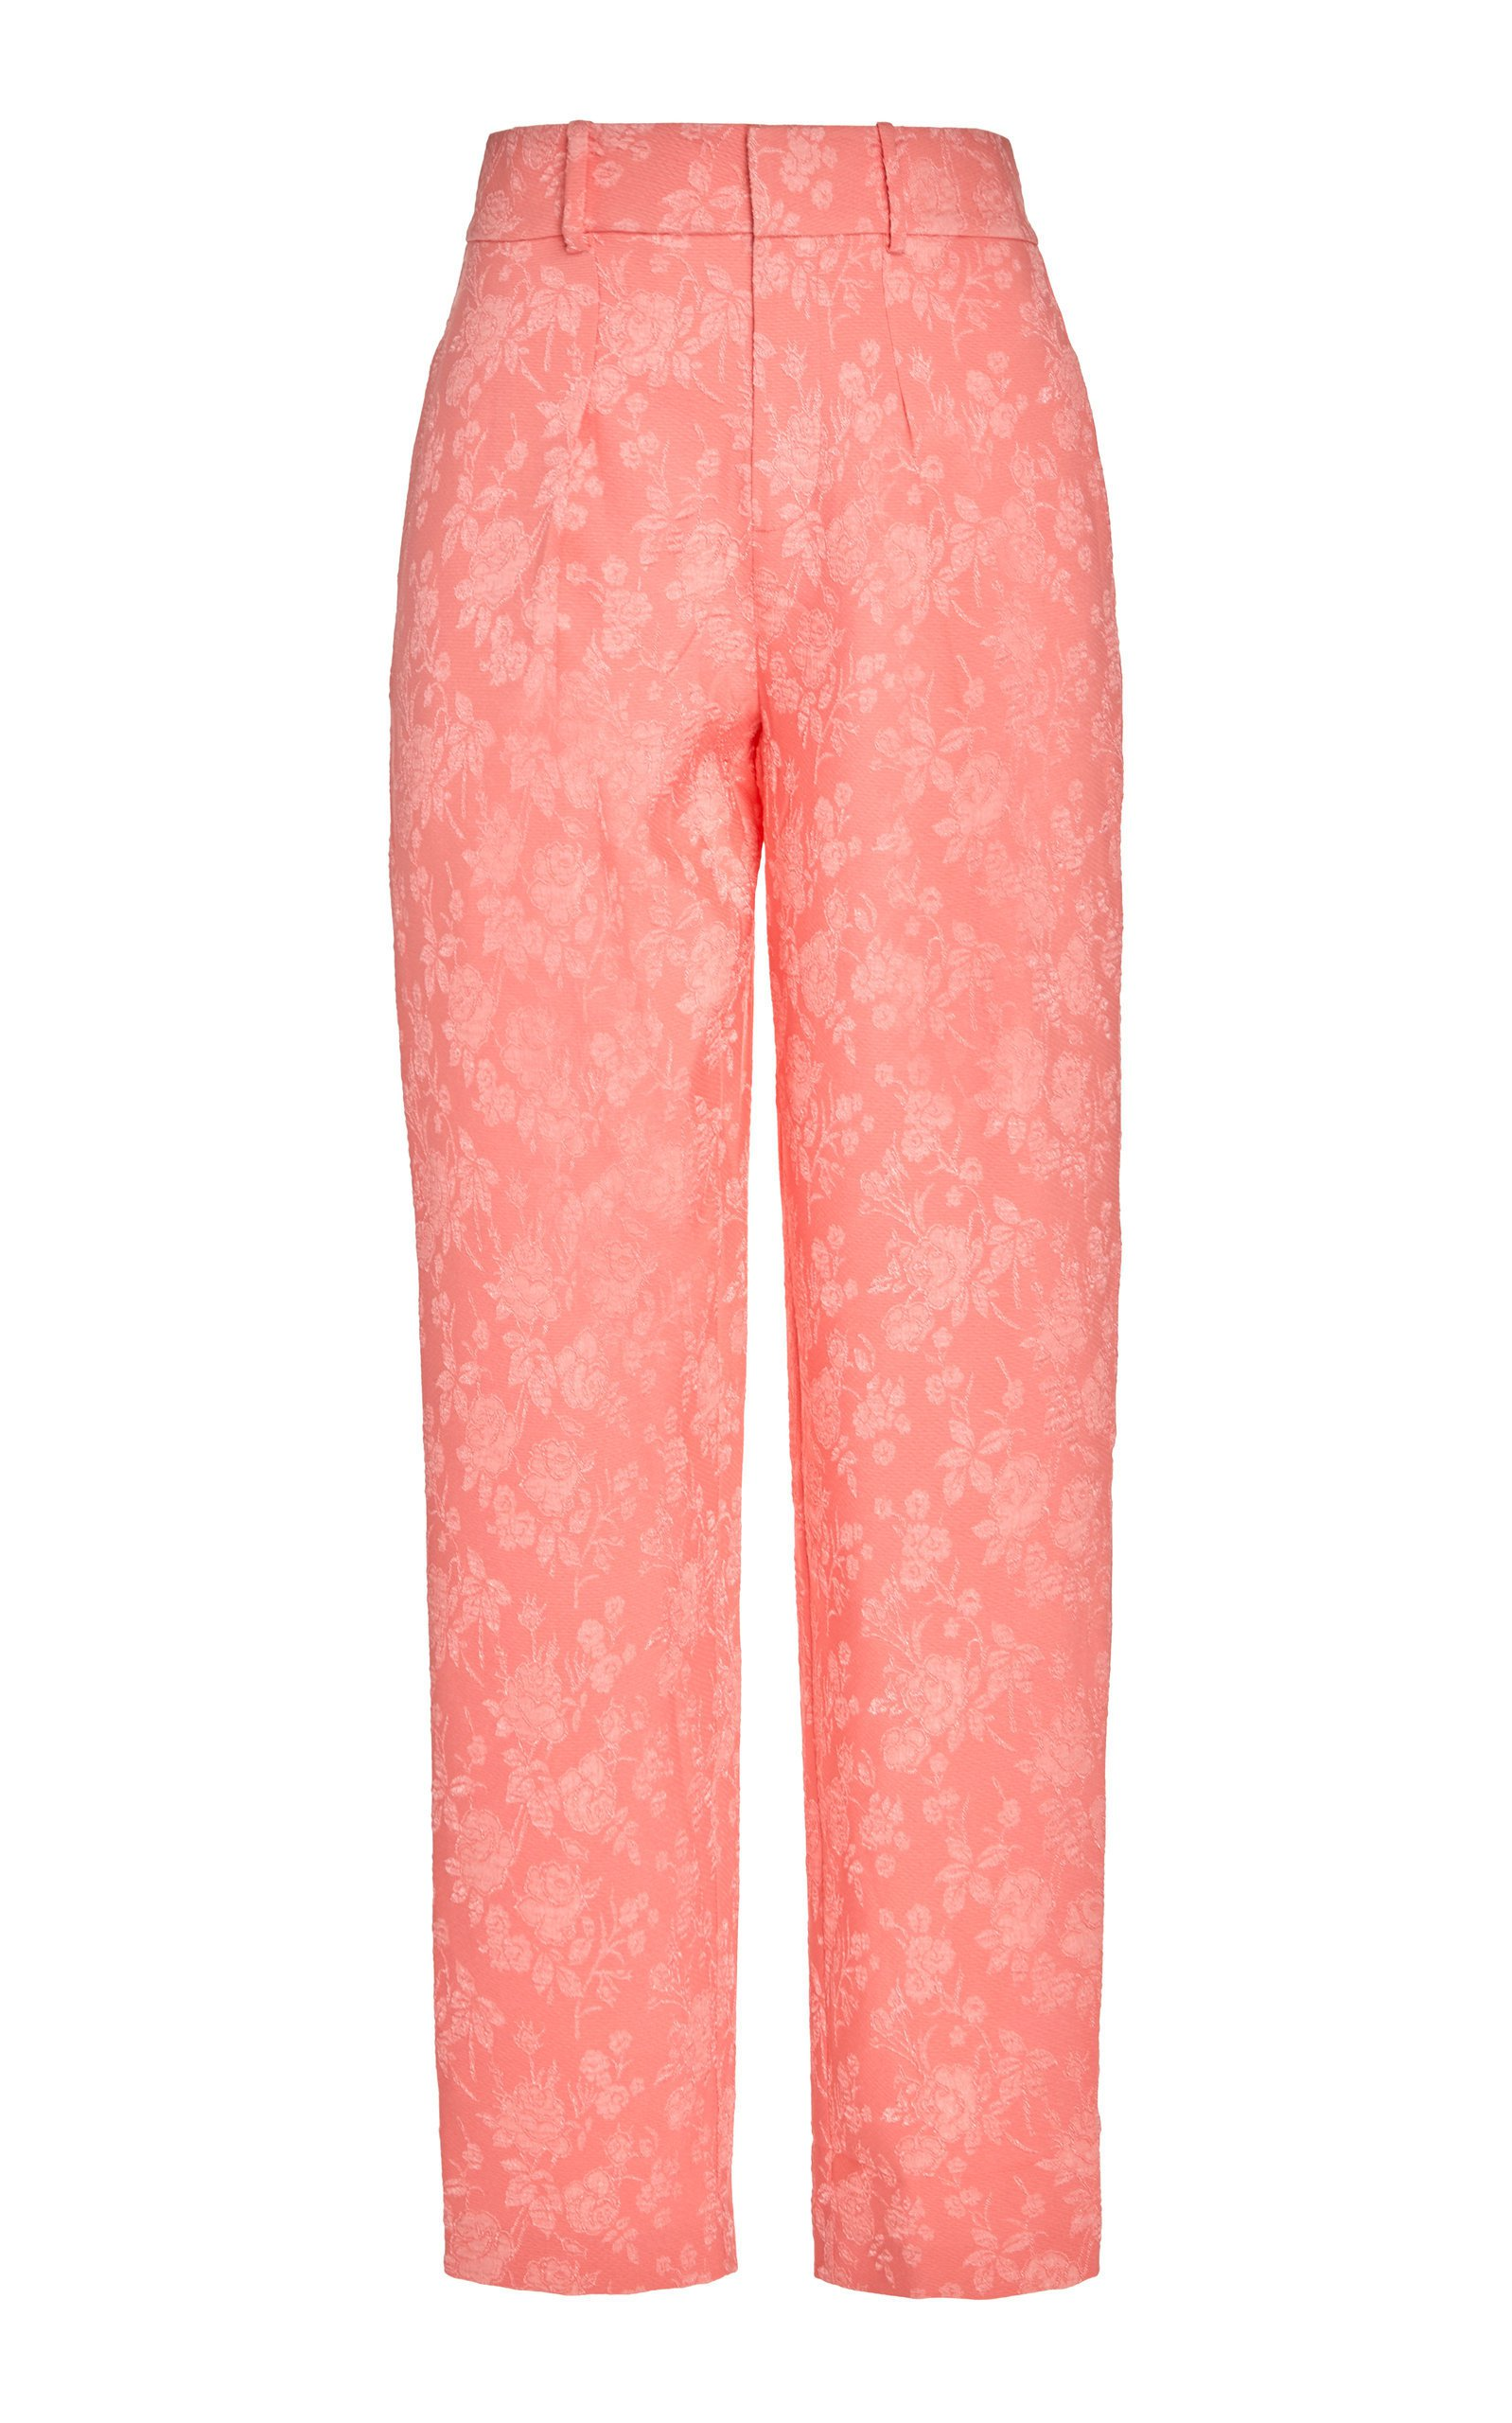 HOFMANN COPENHAGEN Carrie Pleated Pant